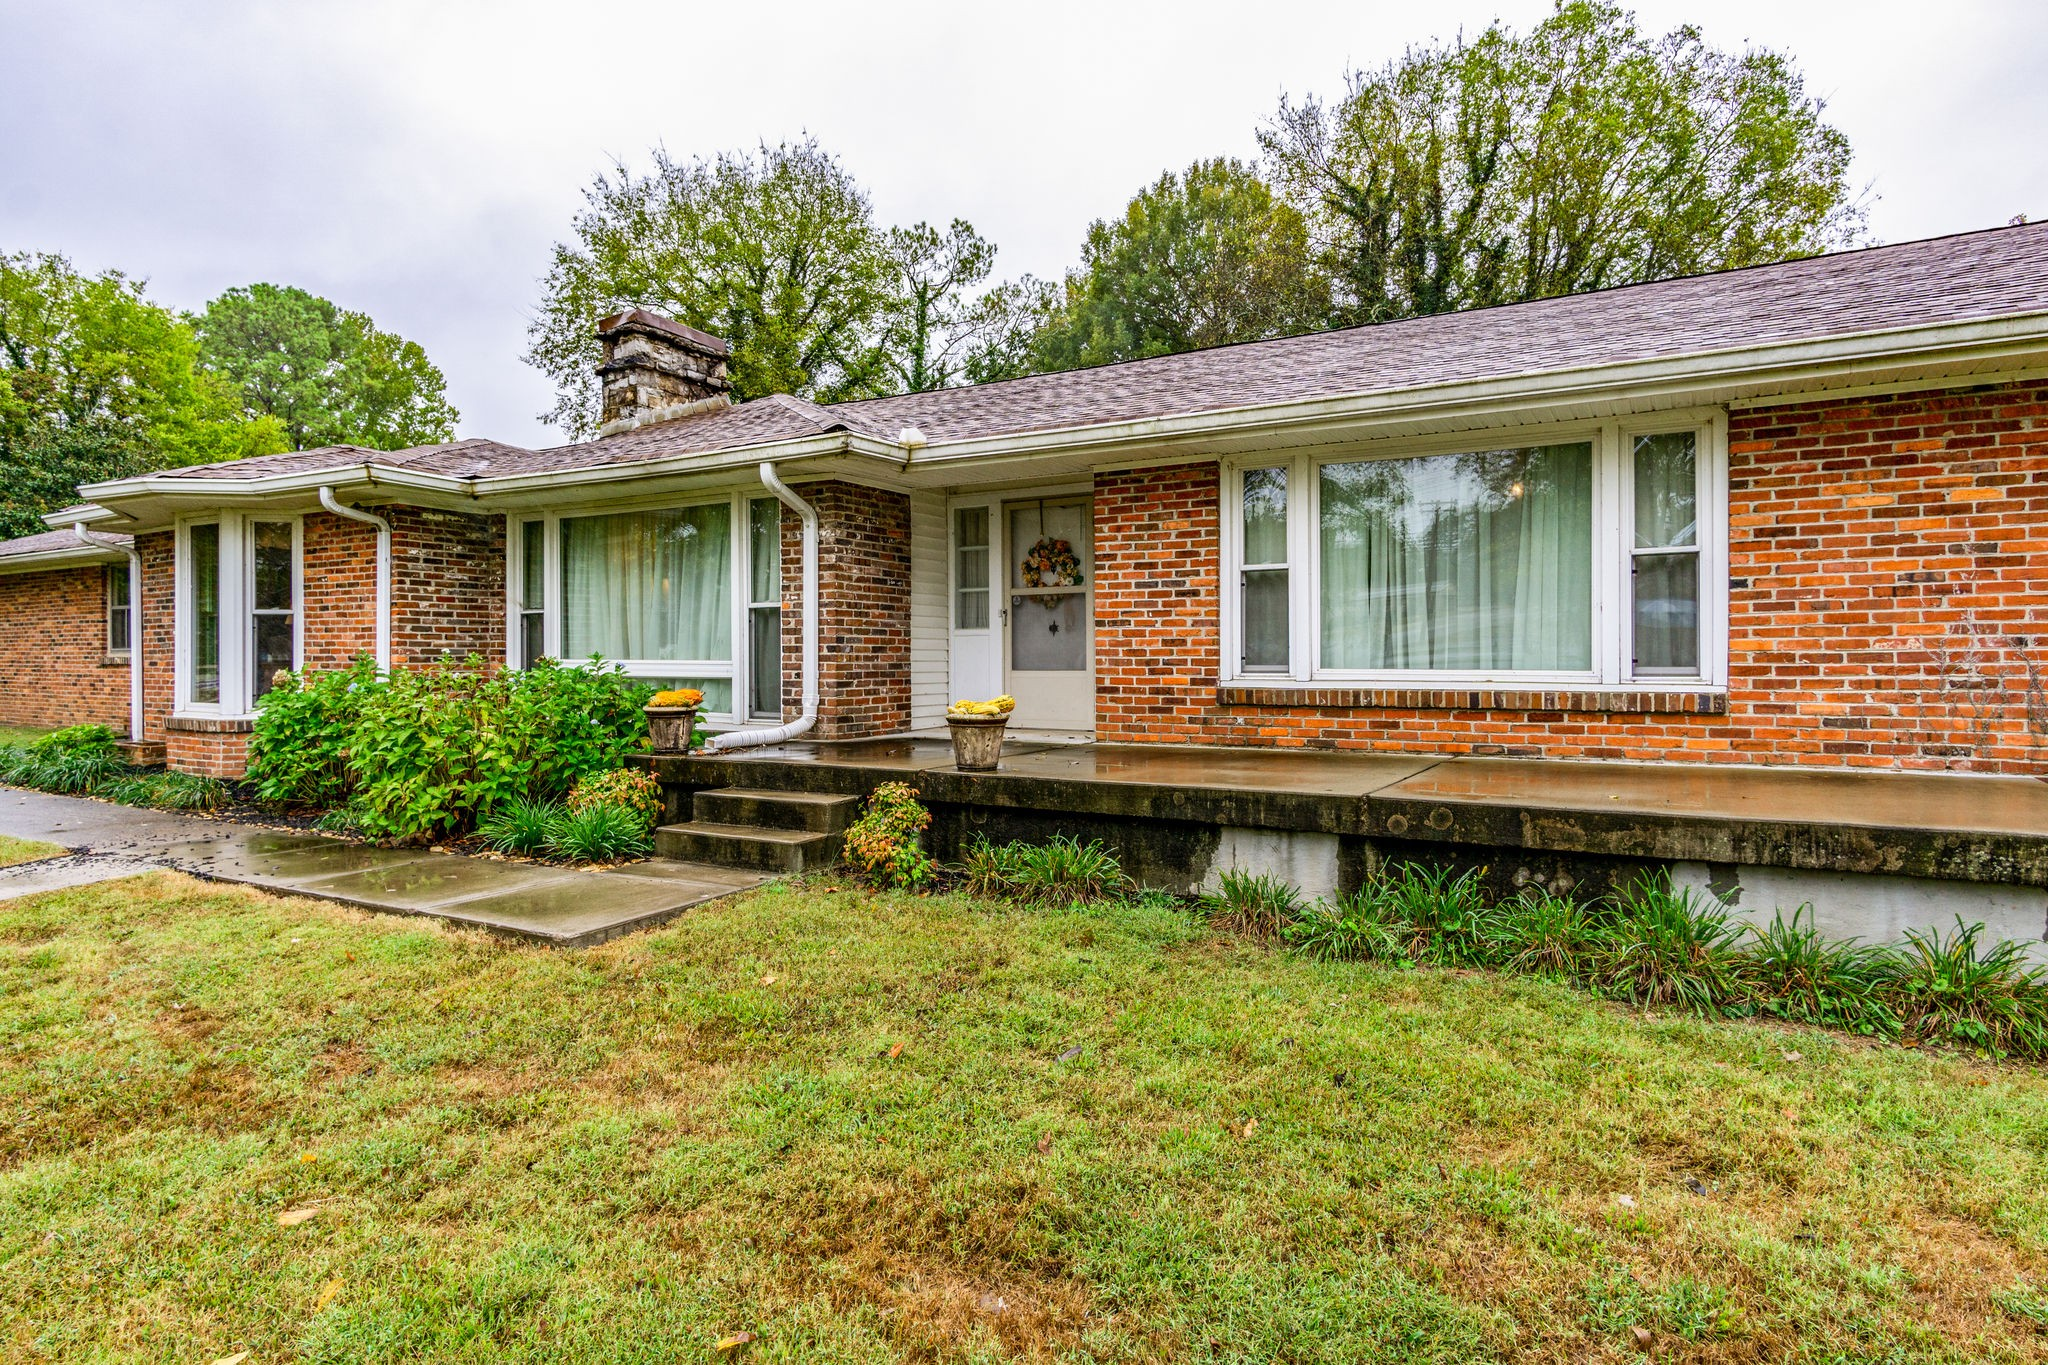 2701 Trotwood Ave, Columbia in Maury County County, TN 38401 Home for Sale